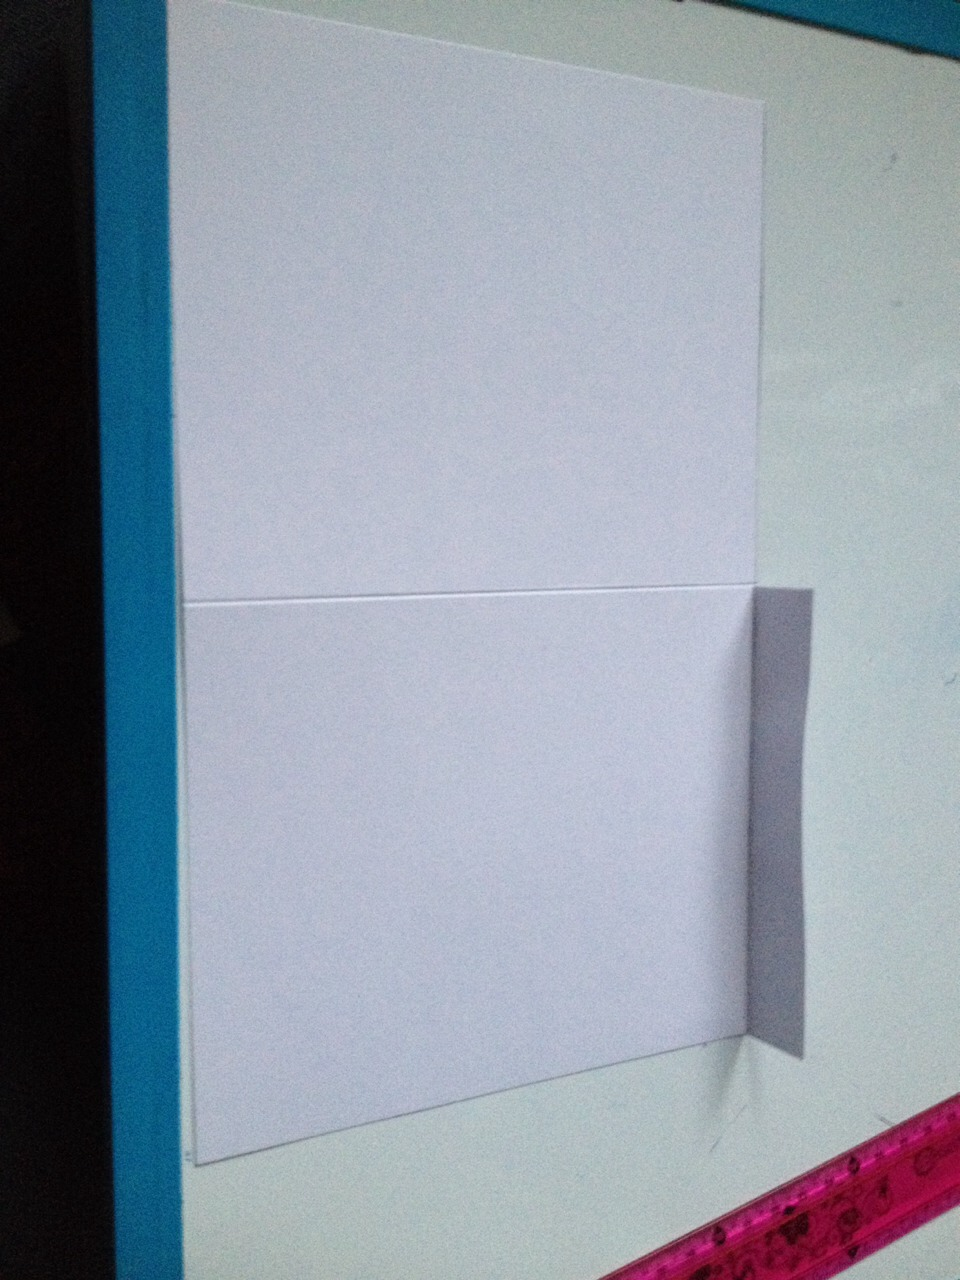 Make another 2cm line on the other side and fold it down